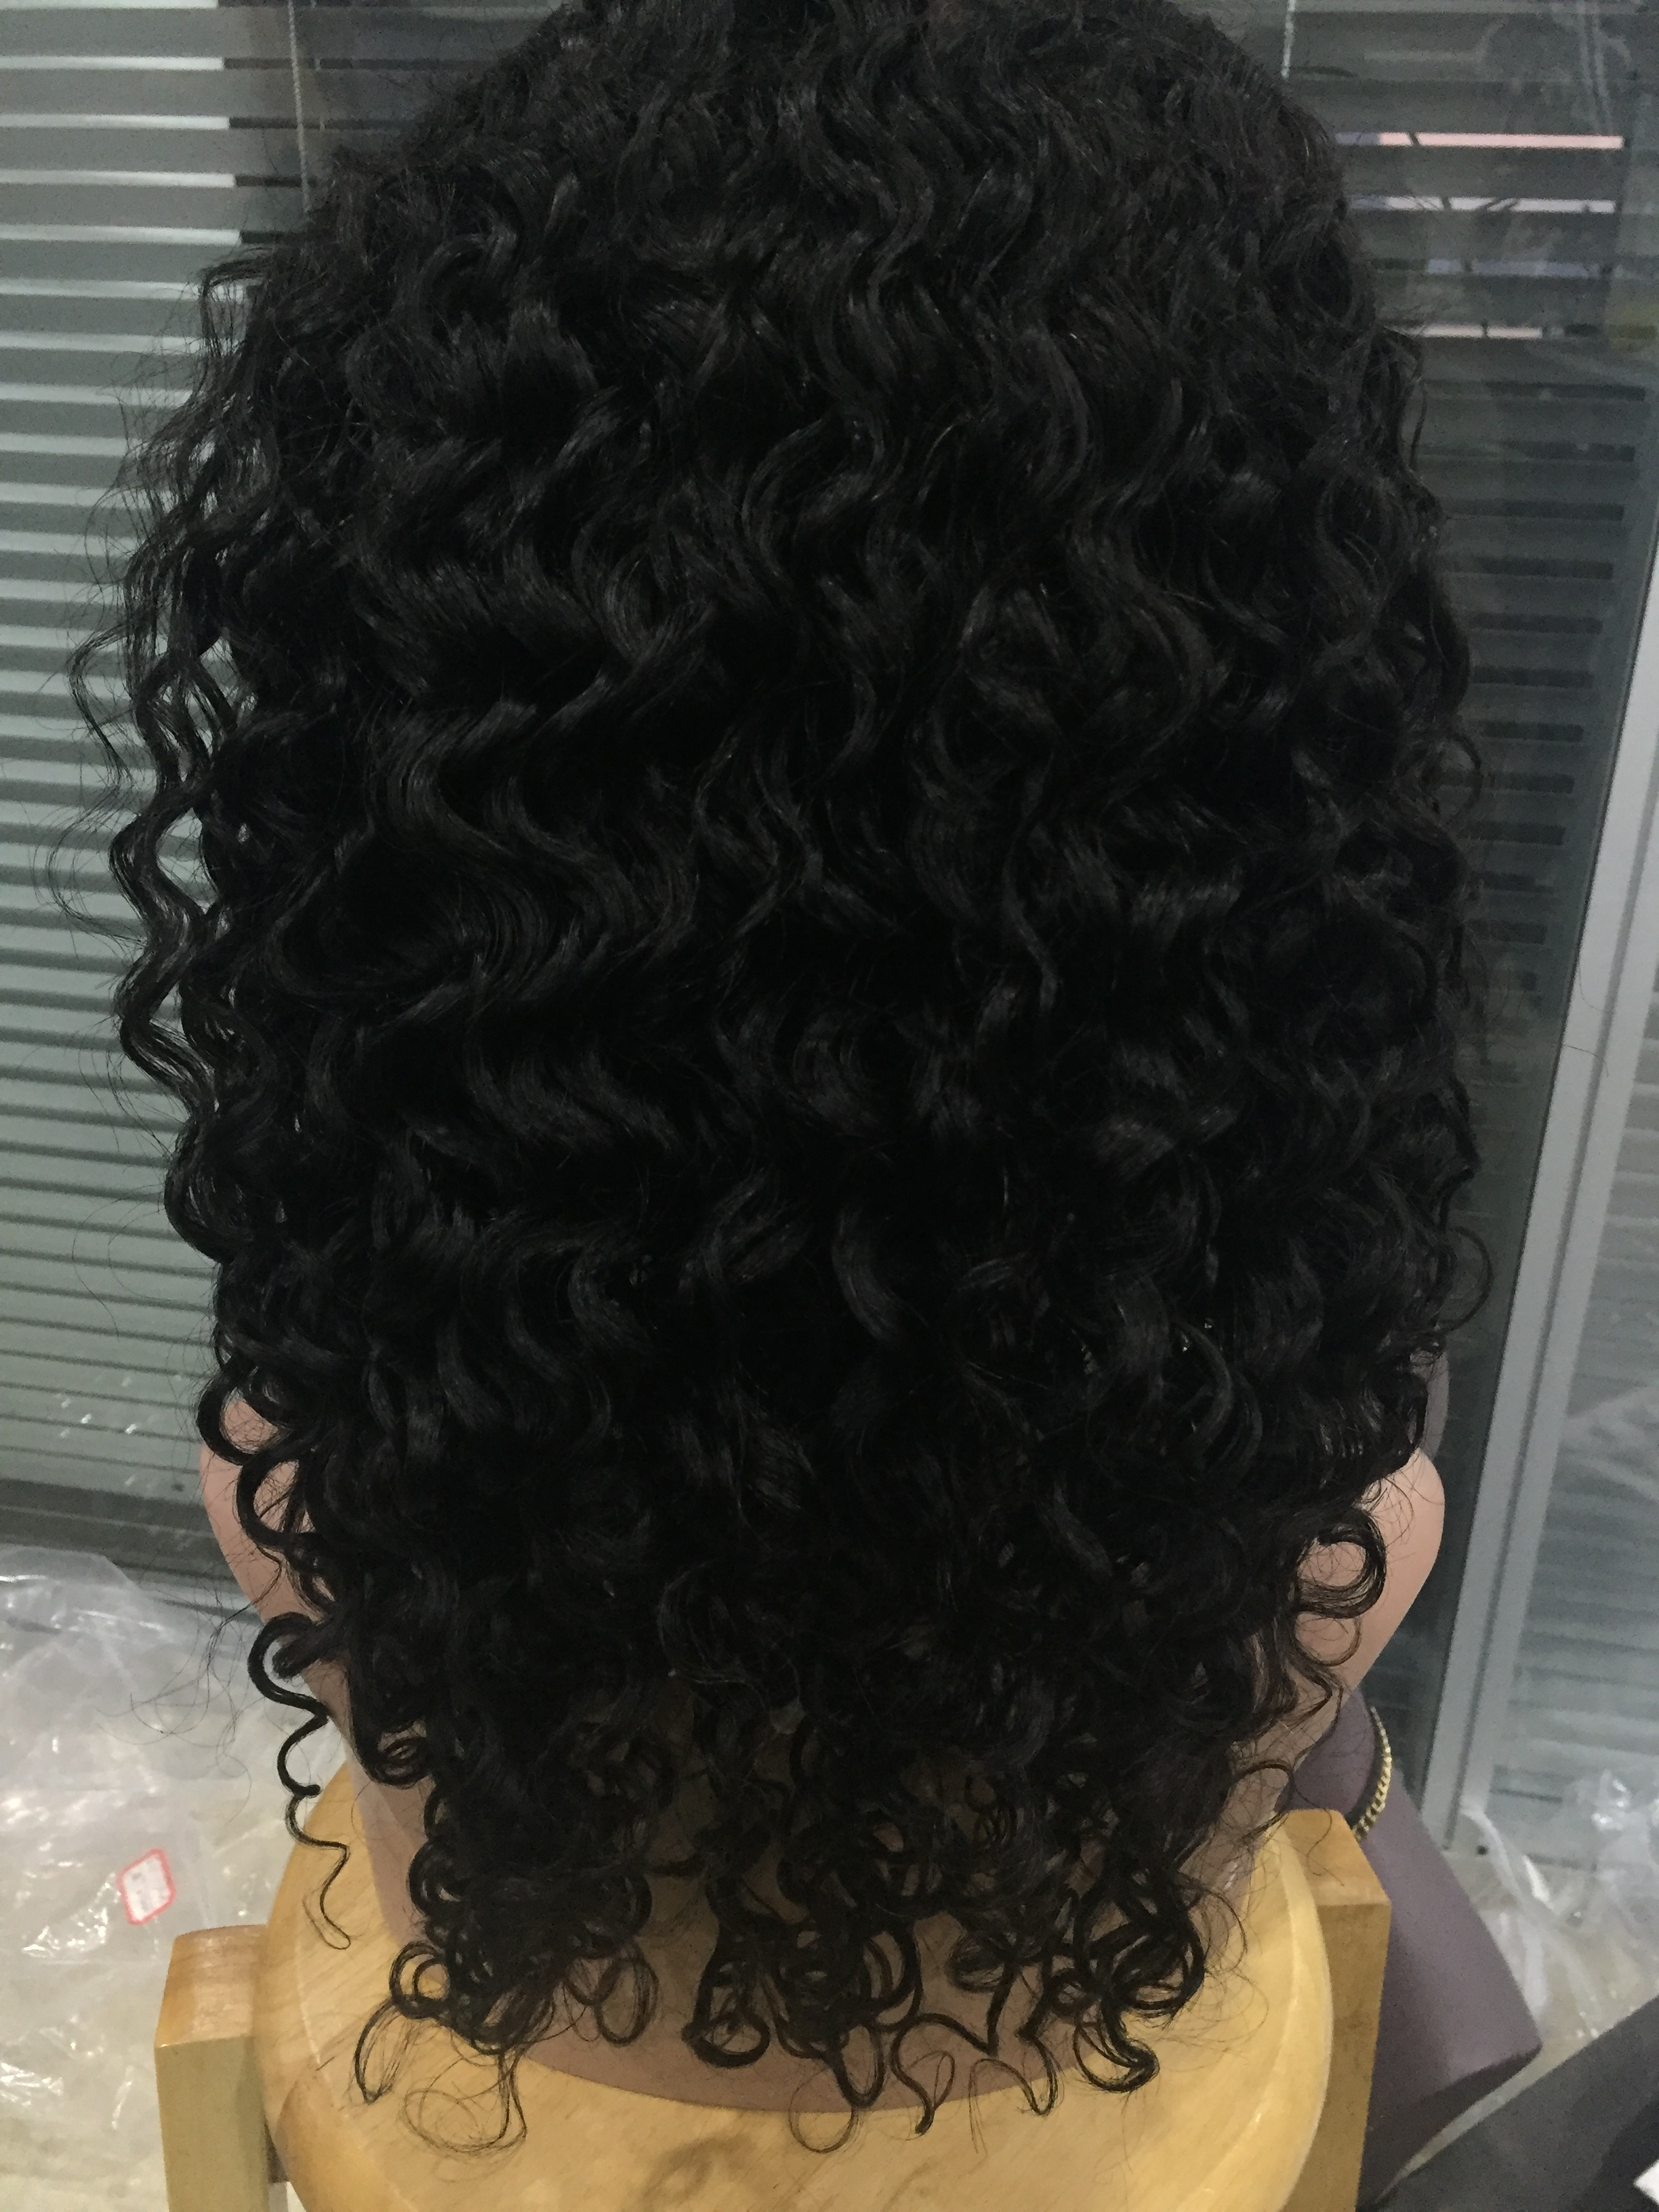 Lace front wigs deep curl 18inch virgin hair wigs YL165